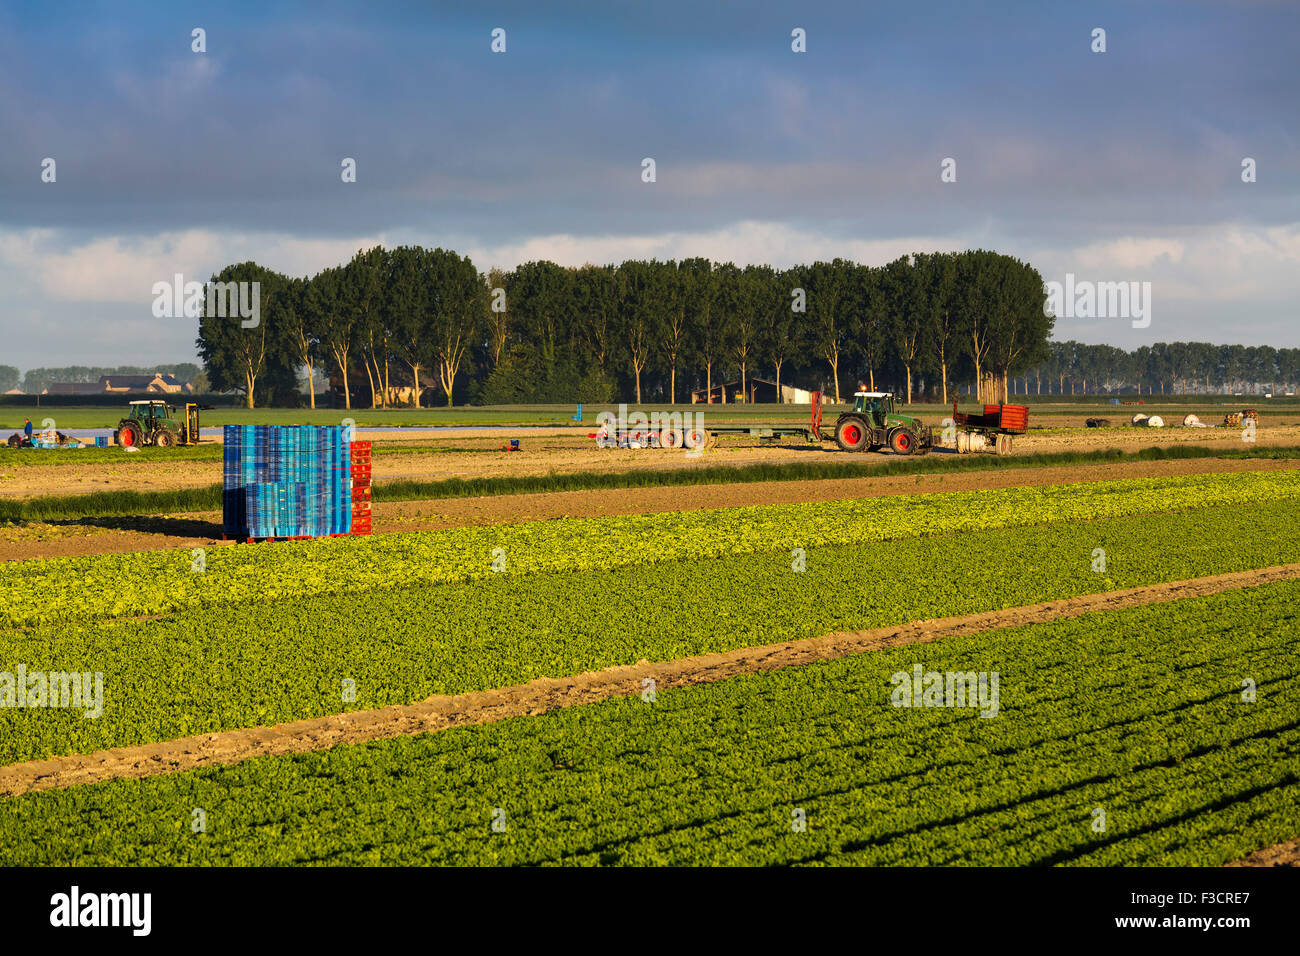 Agriculture cultivation fields Pontorson Avranches Lower Normandy Manche France Europe - Stock Image